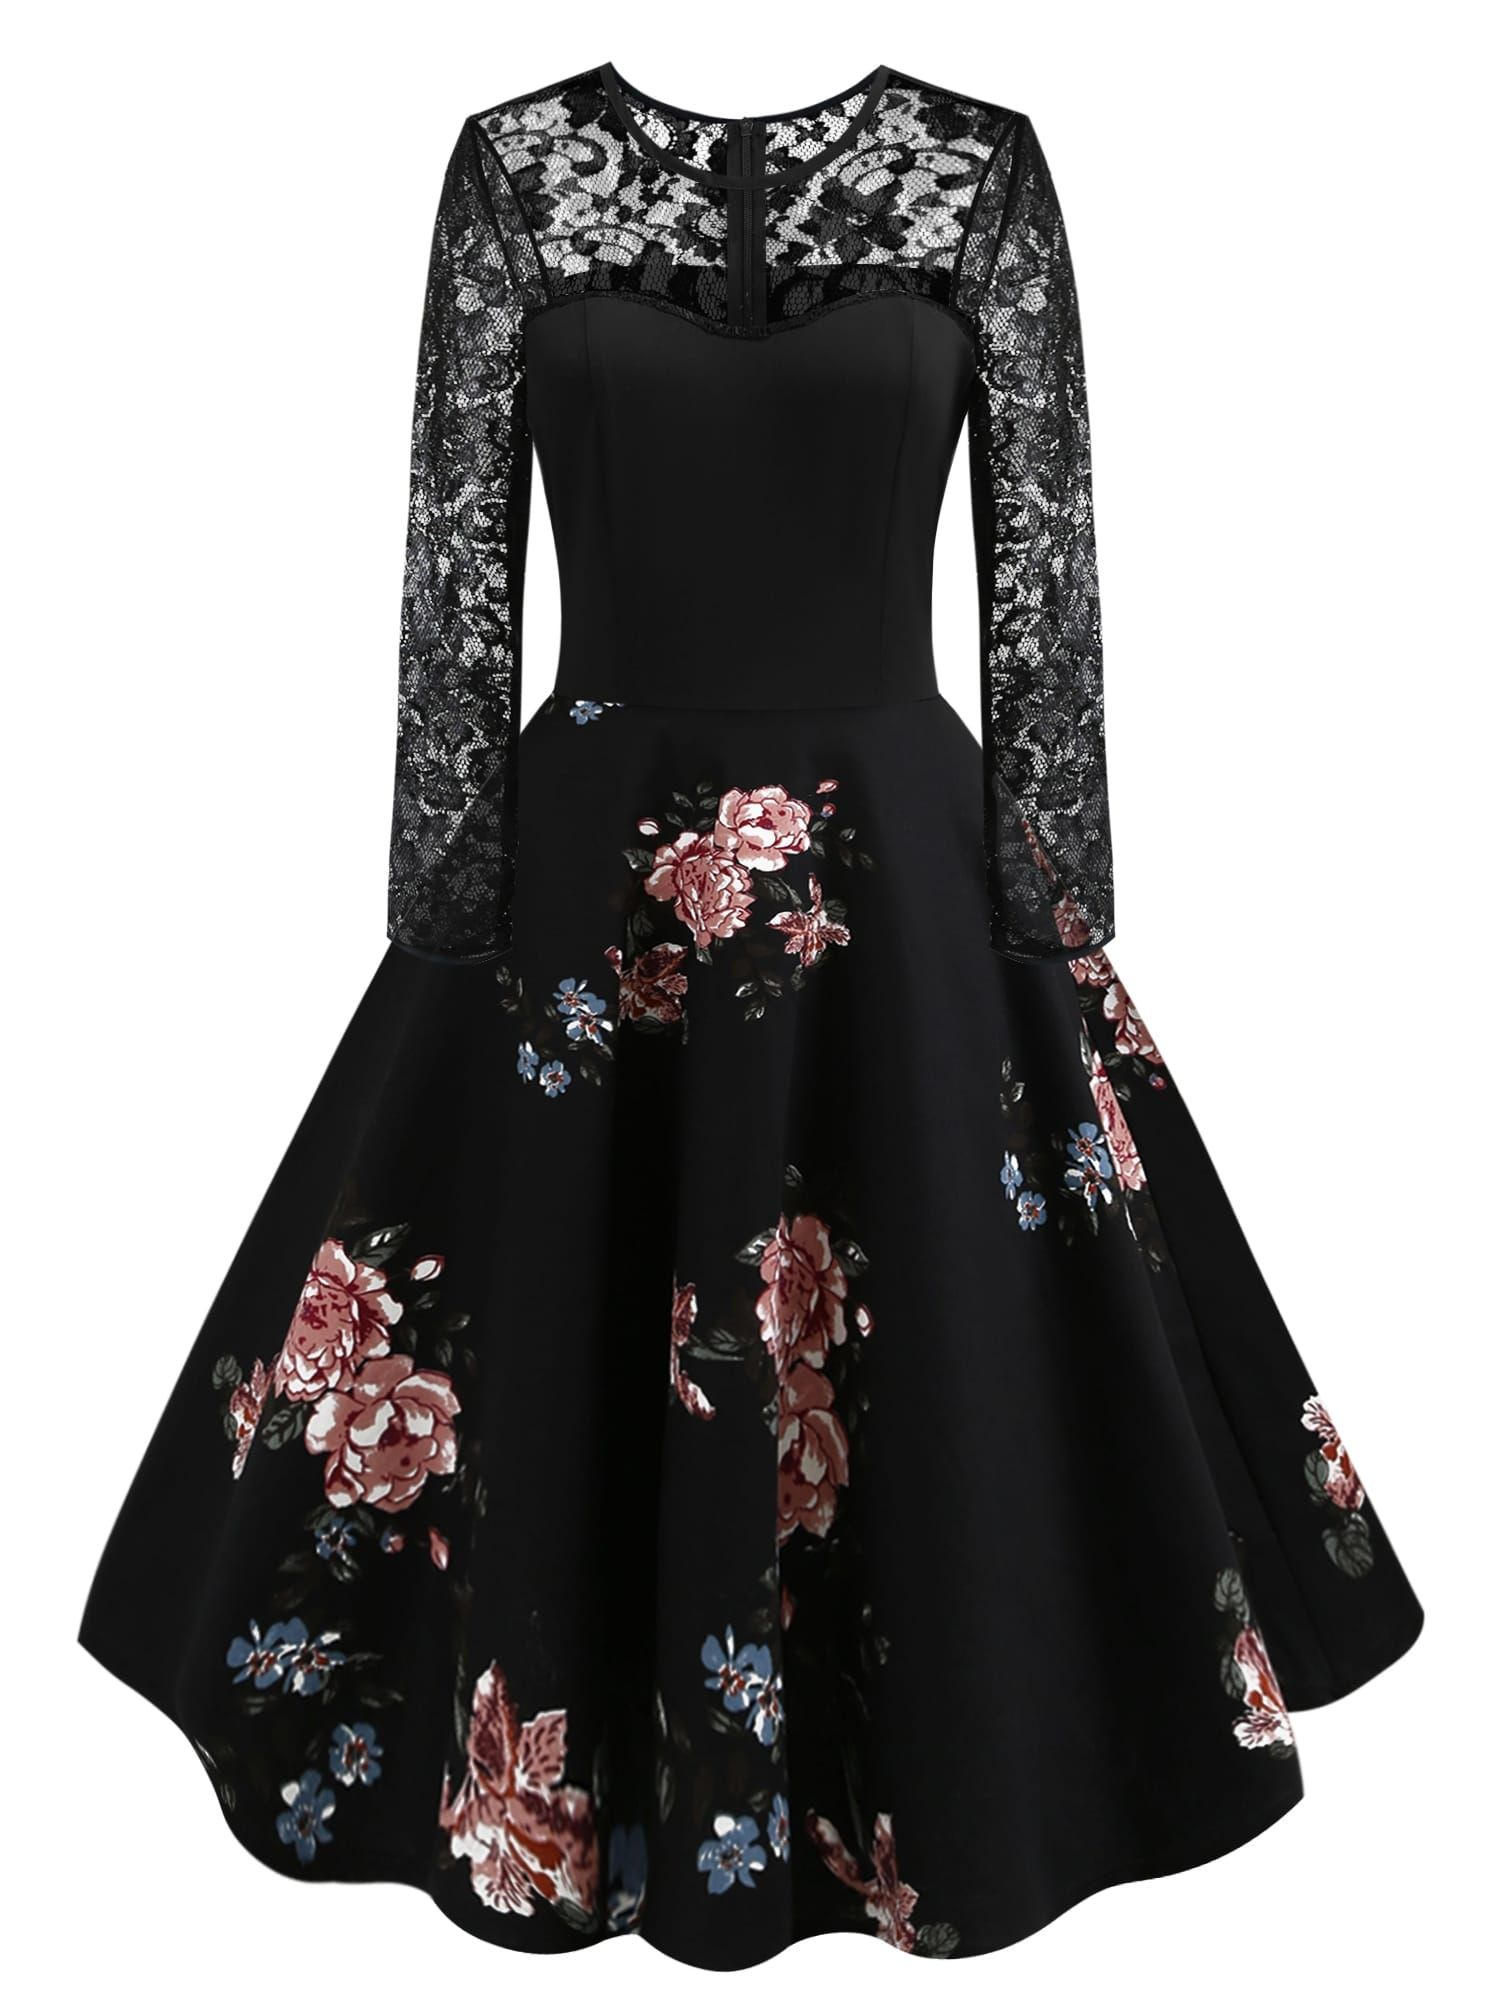 faa9225088207 Vintage A Line Contrast Lace Floral Fit and Flare Flared Round Neck Long  Sleeve Natural Black Knee Length 50s Lace Panel Floral Print Flared Dress